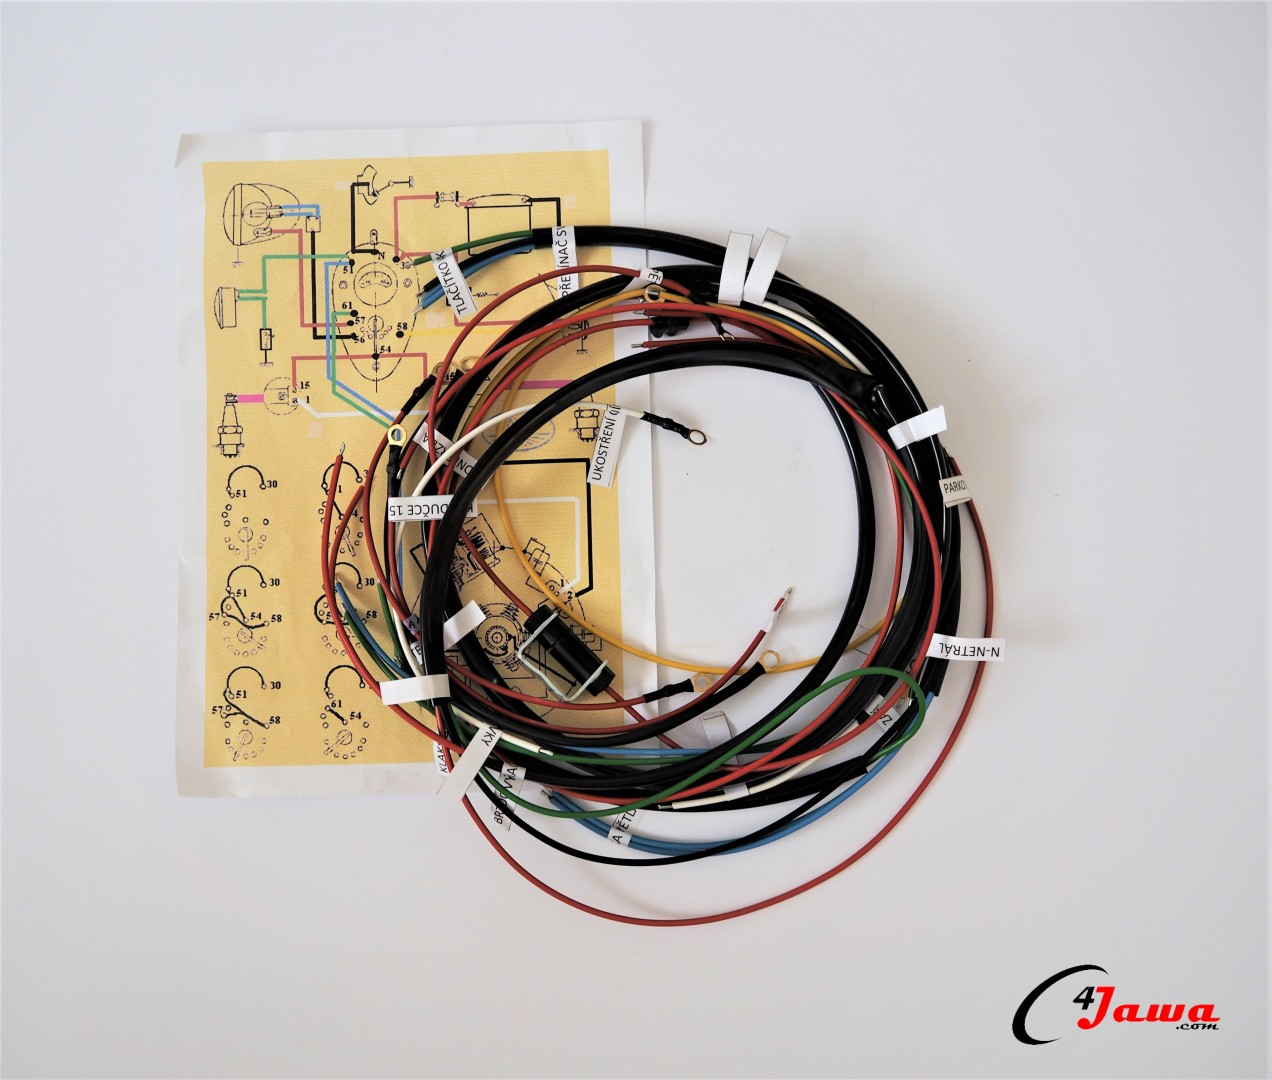 hight resolution of wiring harness switch box in fuel tank jawa 350 354 kyvacka